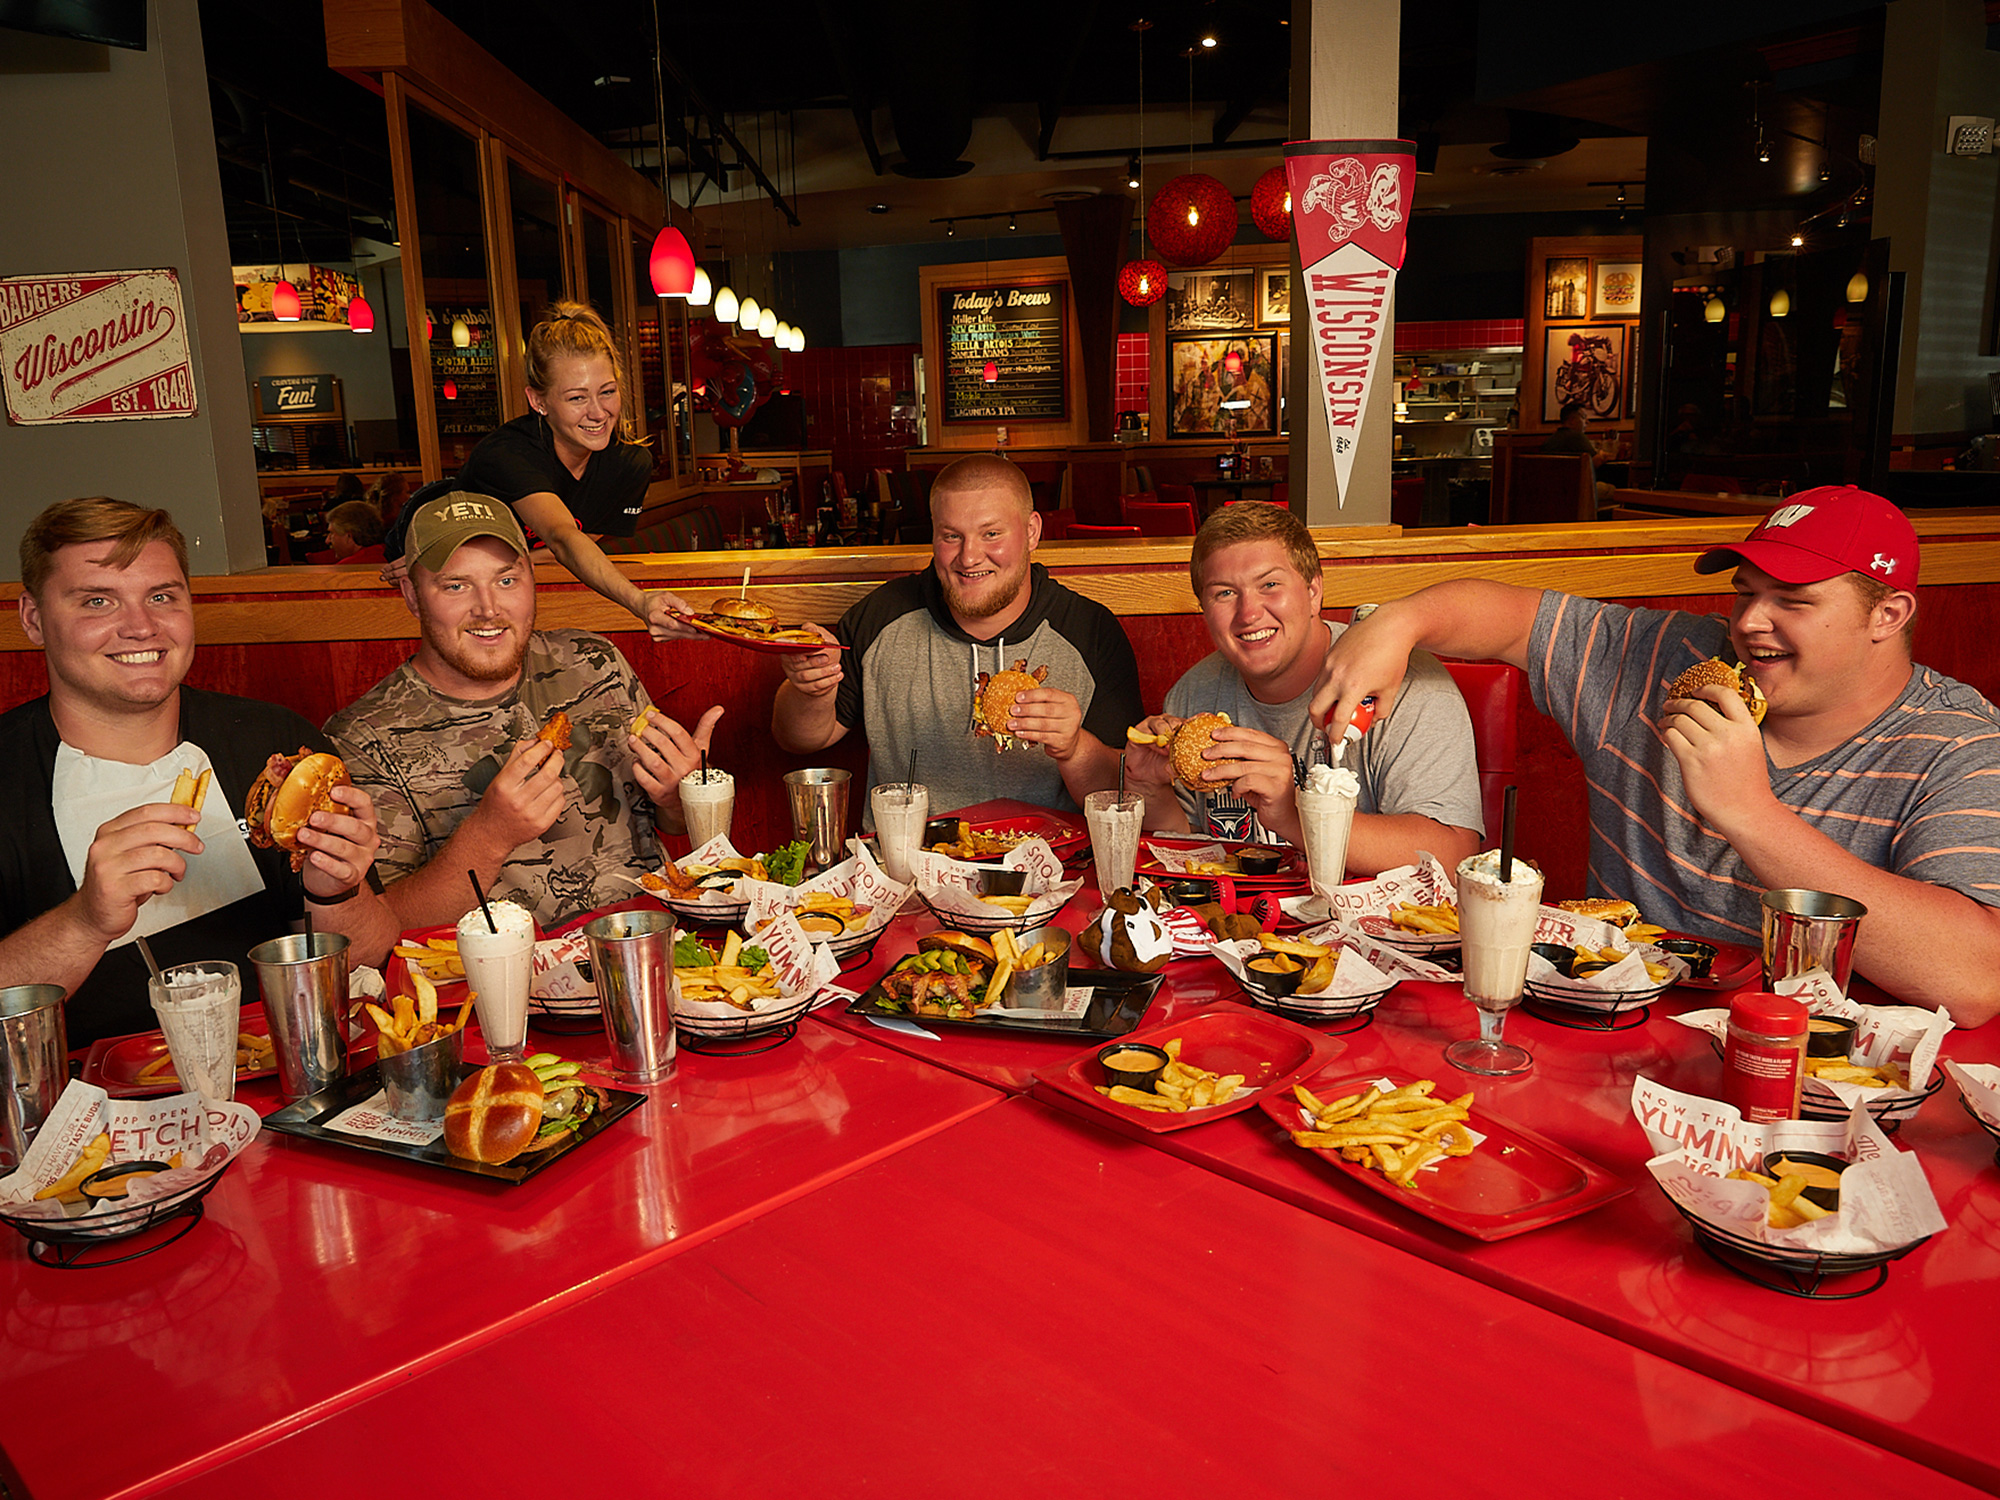 <p>It takes 15 orders of french fries and a total of roughly 19,052 calories to sate the 1,582 pounds of Badger brawn at this Madison-area Red Robin. Edwards, Benzschawel, Biadasz, Deiter and Dietzen have combined for 130 career starts.</p>